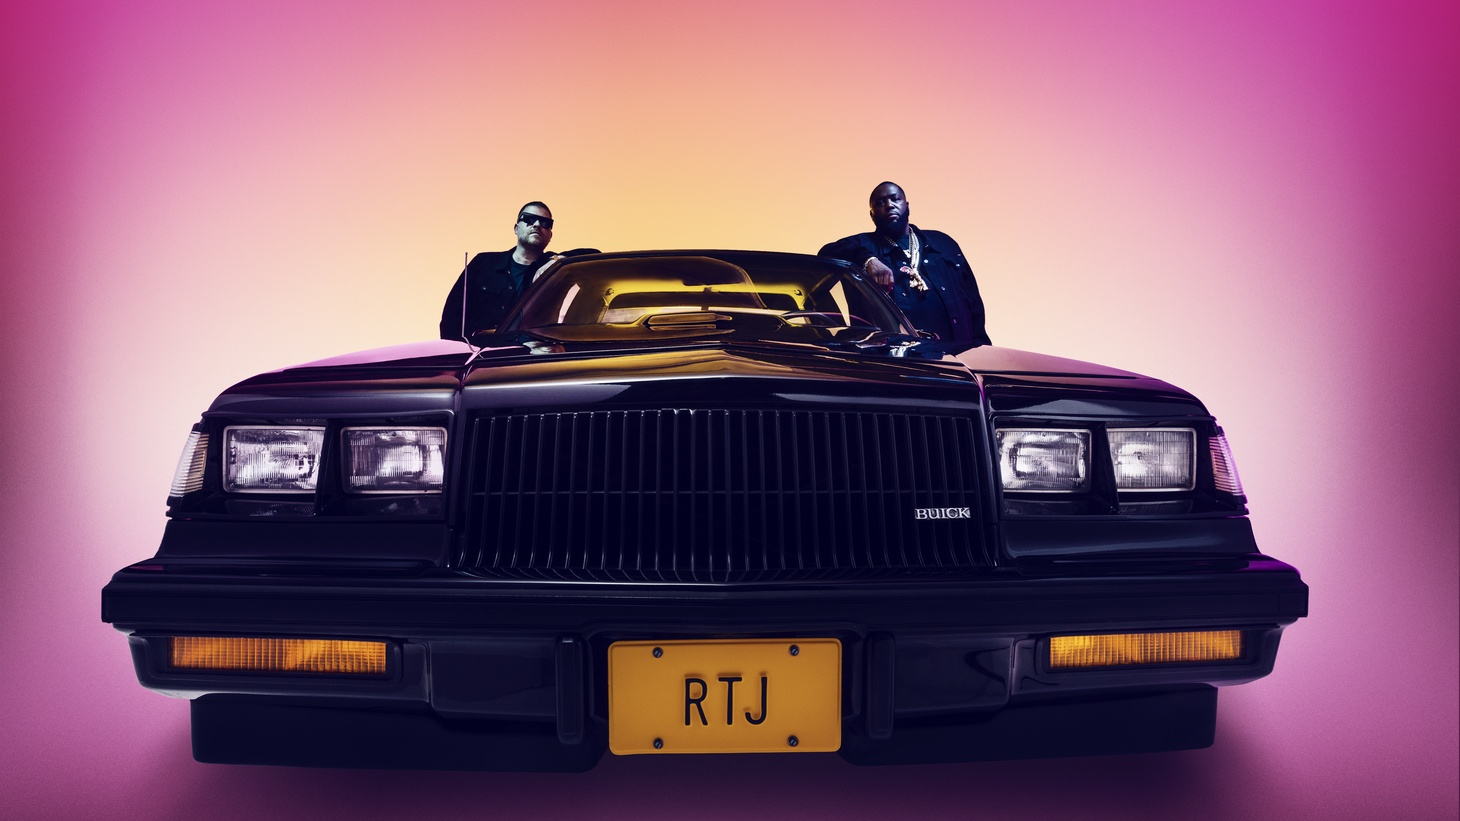 Killer Mike and El-P, the duo known as Run The Jewels, dropped an album that has a pinpoint view of the racial and social justices people are fighting for.